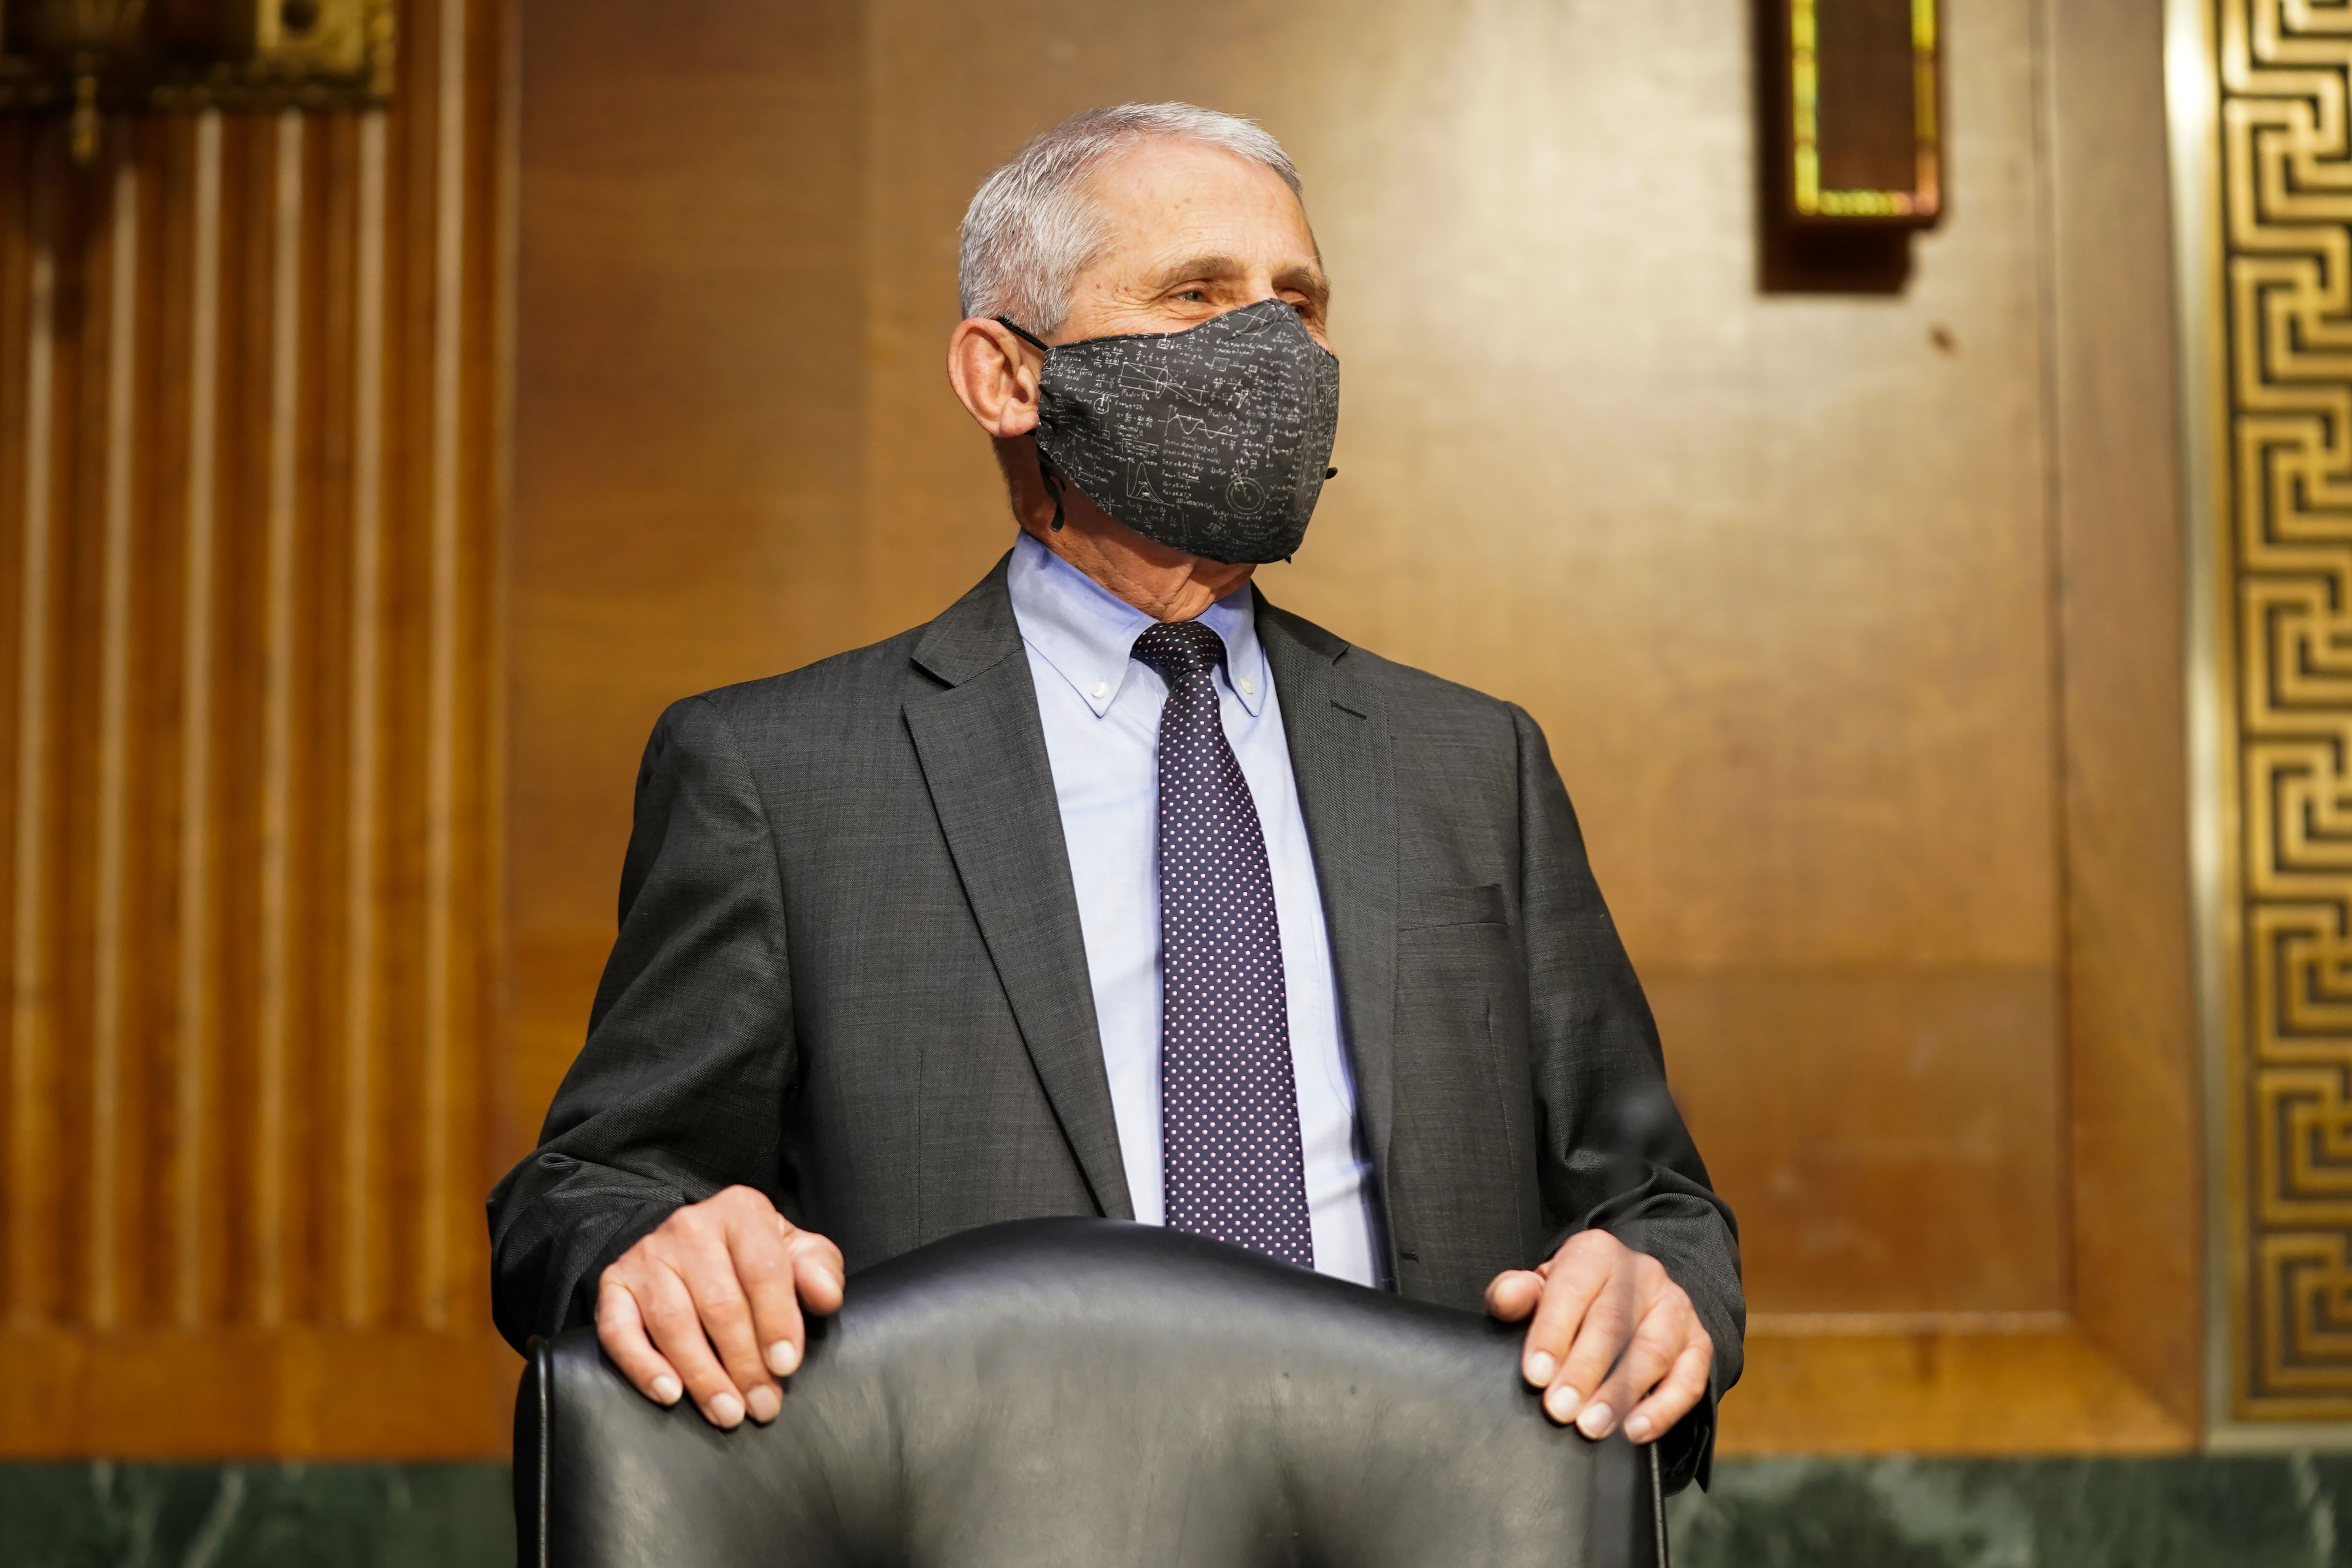 Dr. Anthony Fauci, director of the National Institute of Allergy and Infectious Diseases, arrives for a hearing on May 11 in Washington, DC.